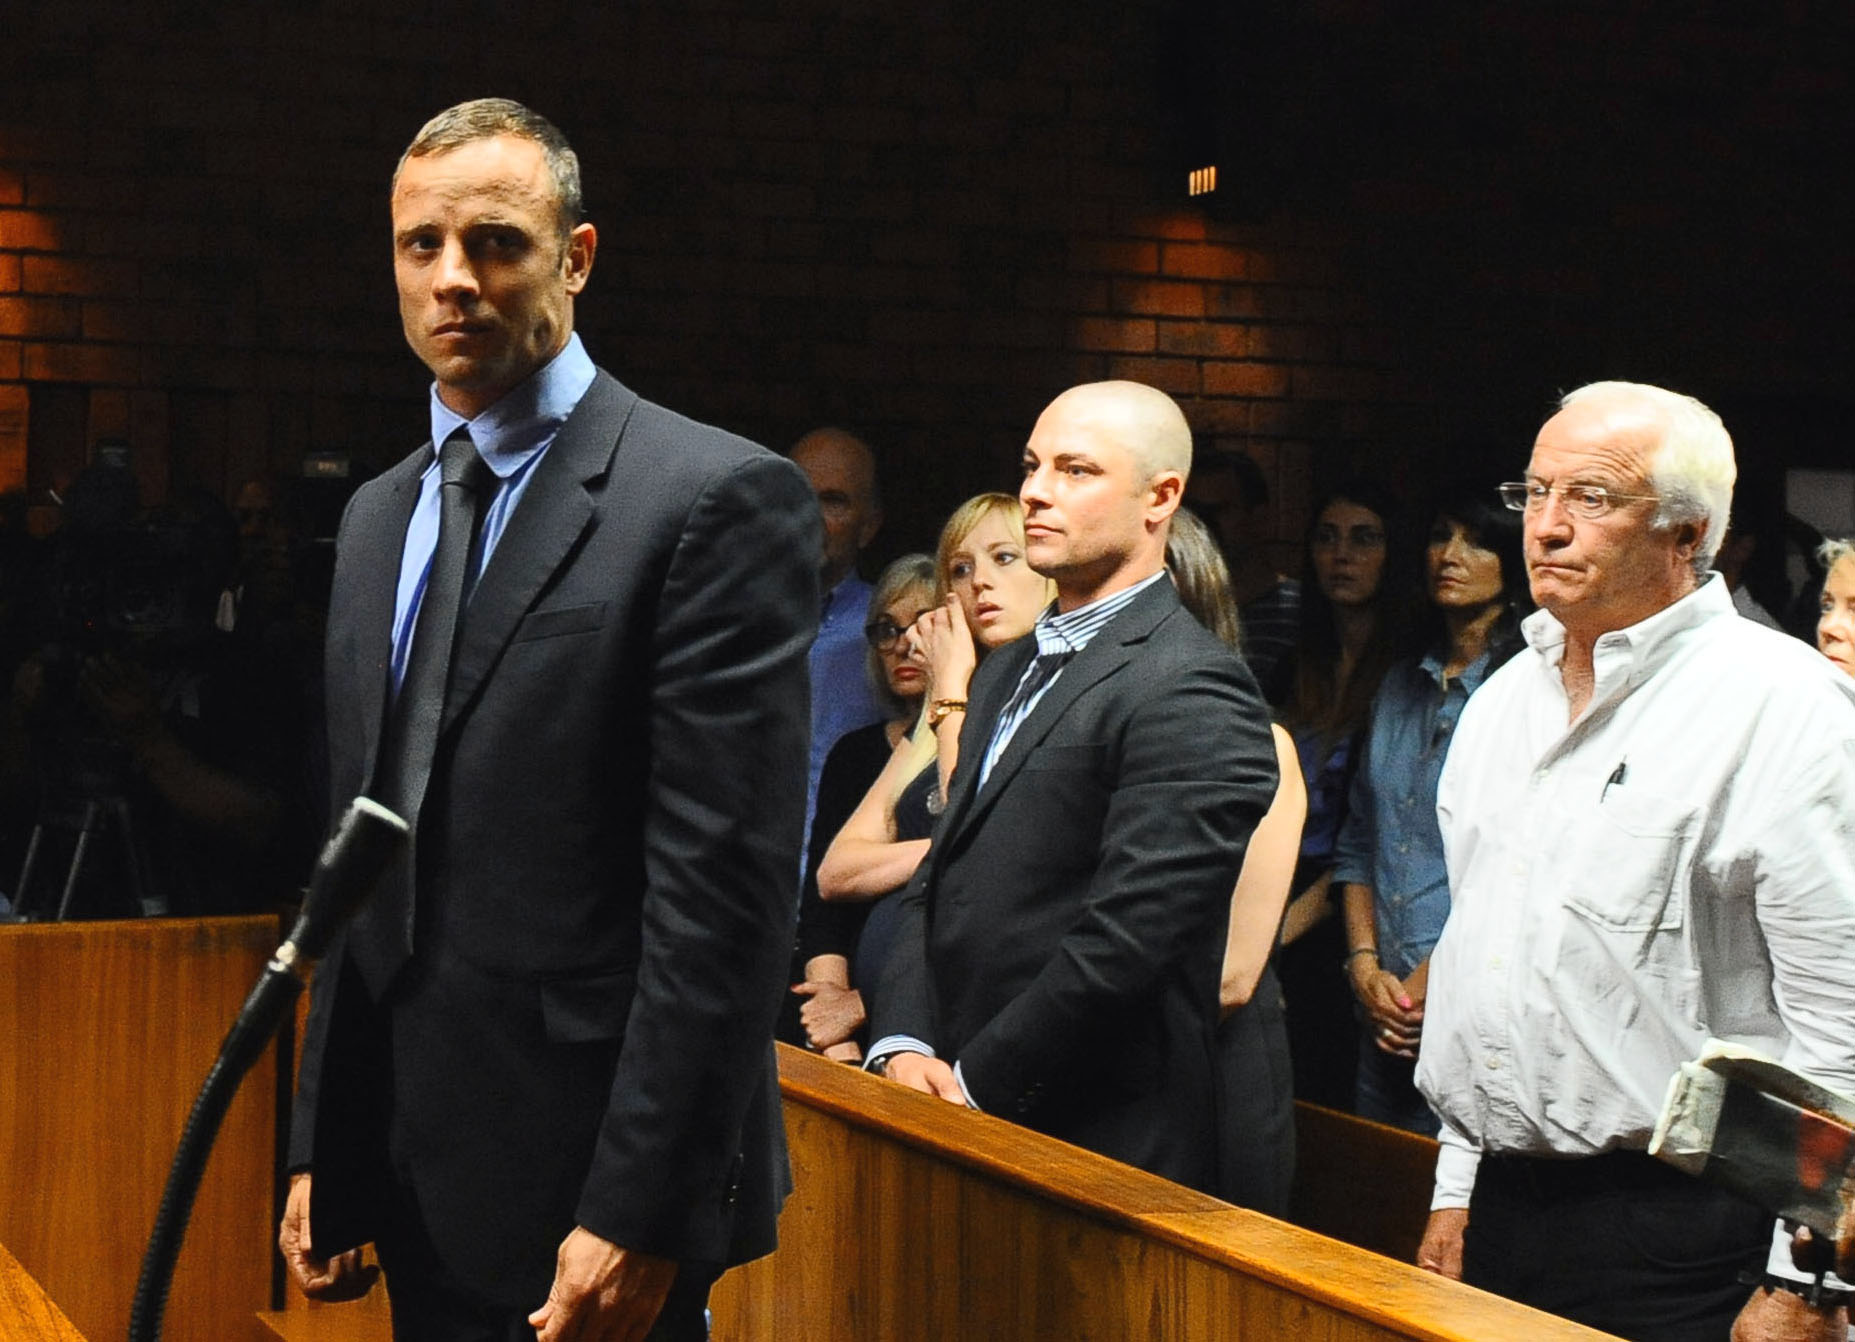 Oscar Pistorius, foreground, stands following his bail hearing, as his family looks on. (AP)